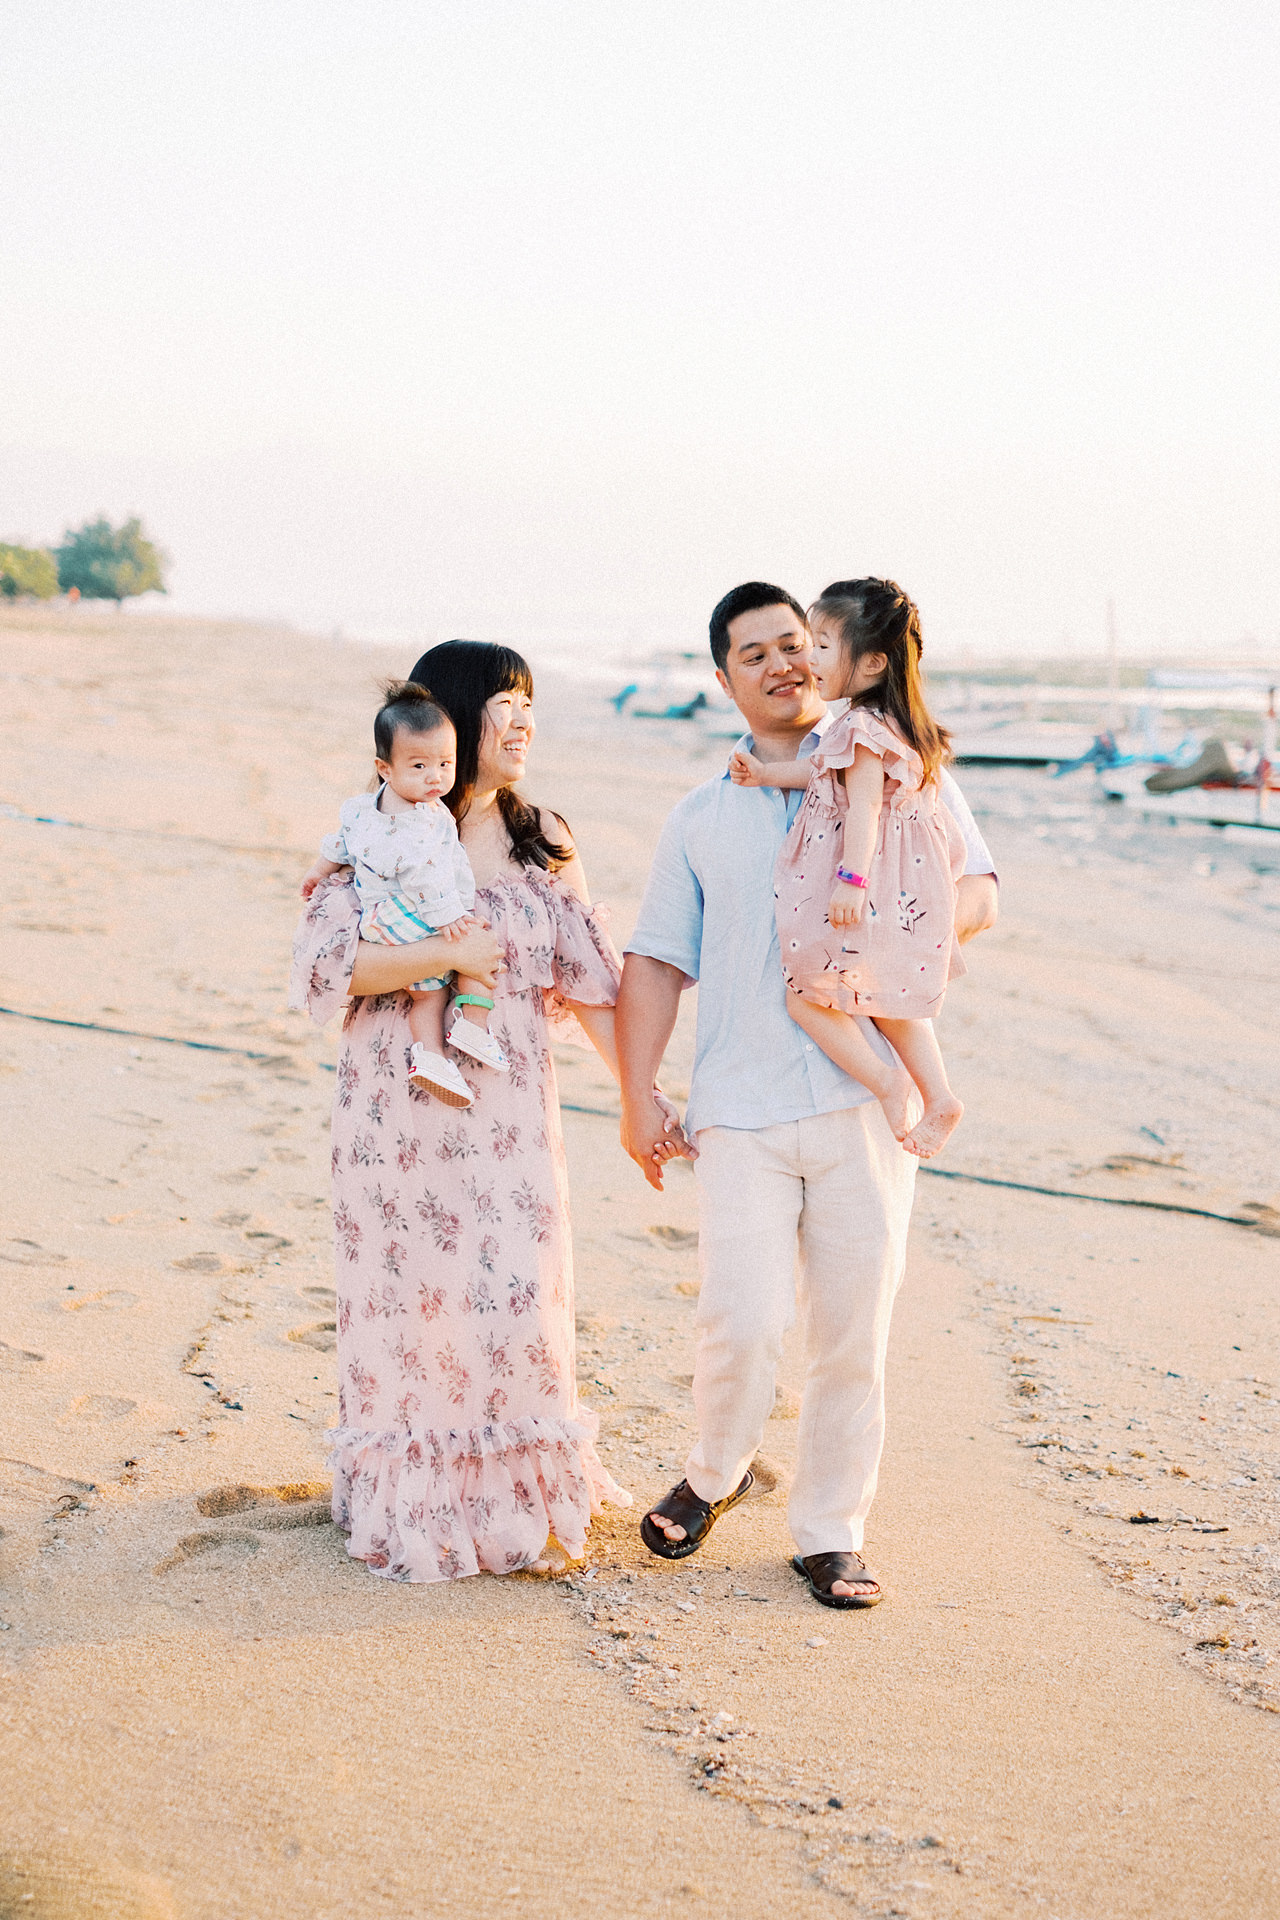 V&B: Kids and Family Session in Bali 3